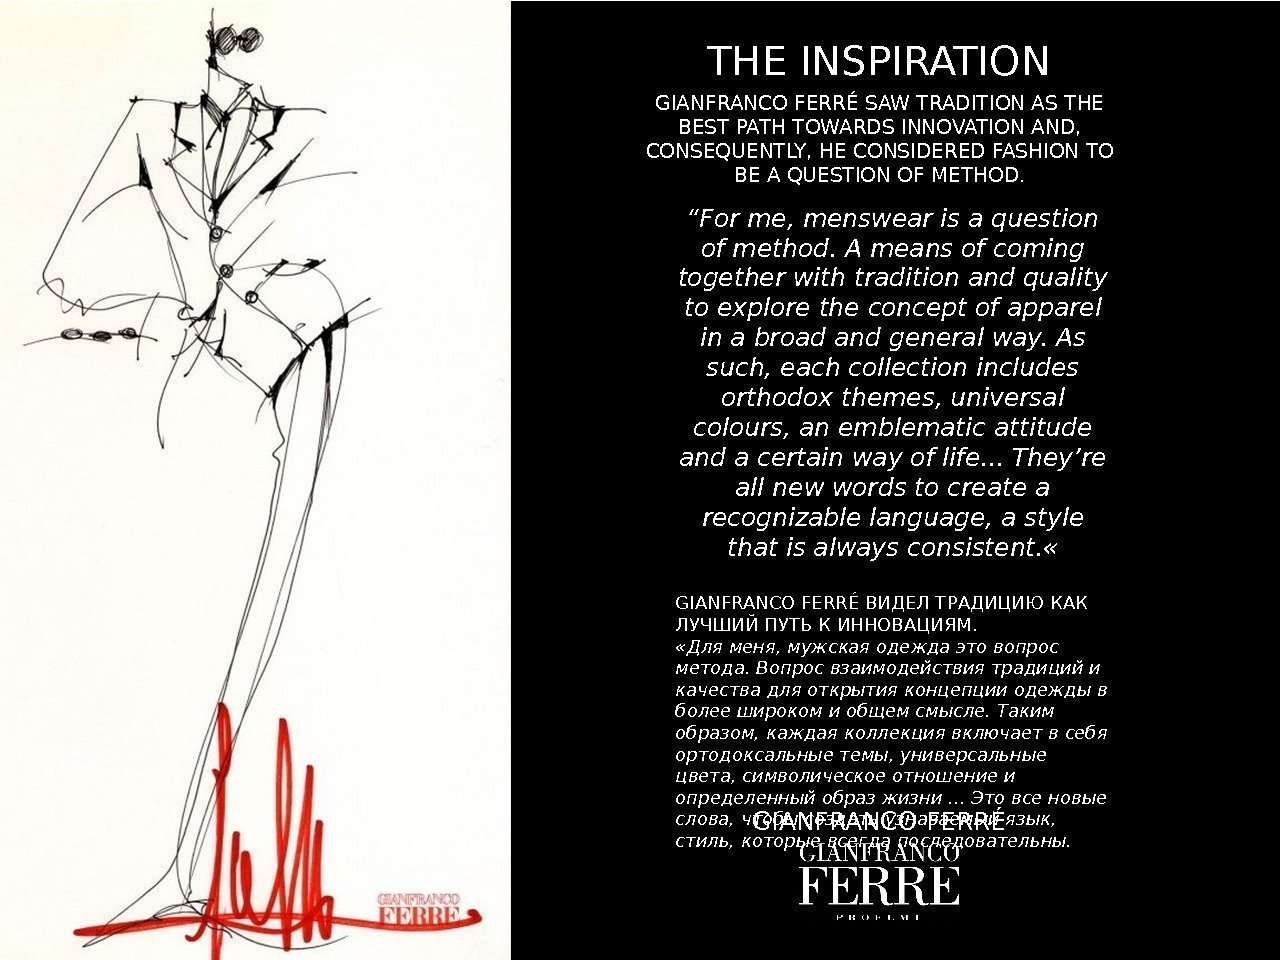 GIANFRANCO FERRÉ SAW TRADITION AS THE BEST PATH TOWARDS INNOVATION AND,  CONSEQUENTLY, HE